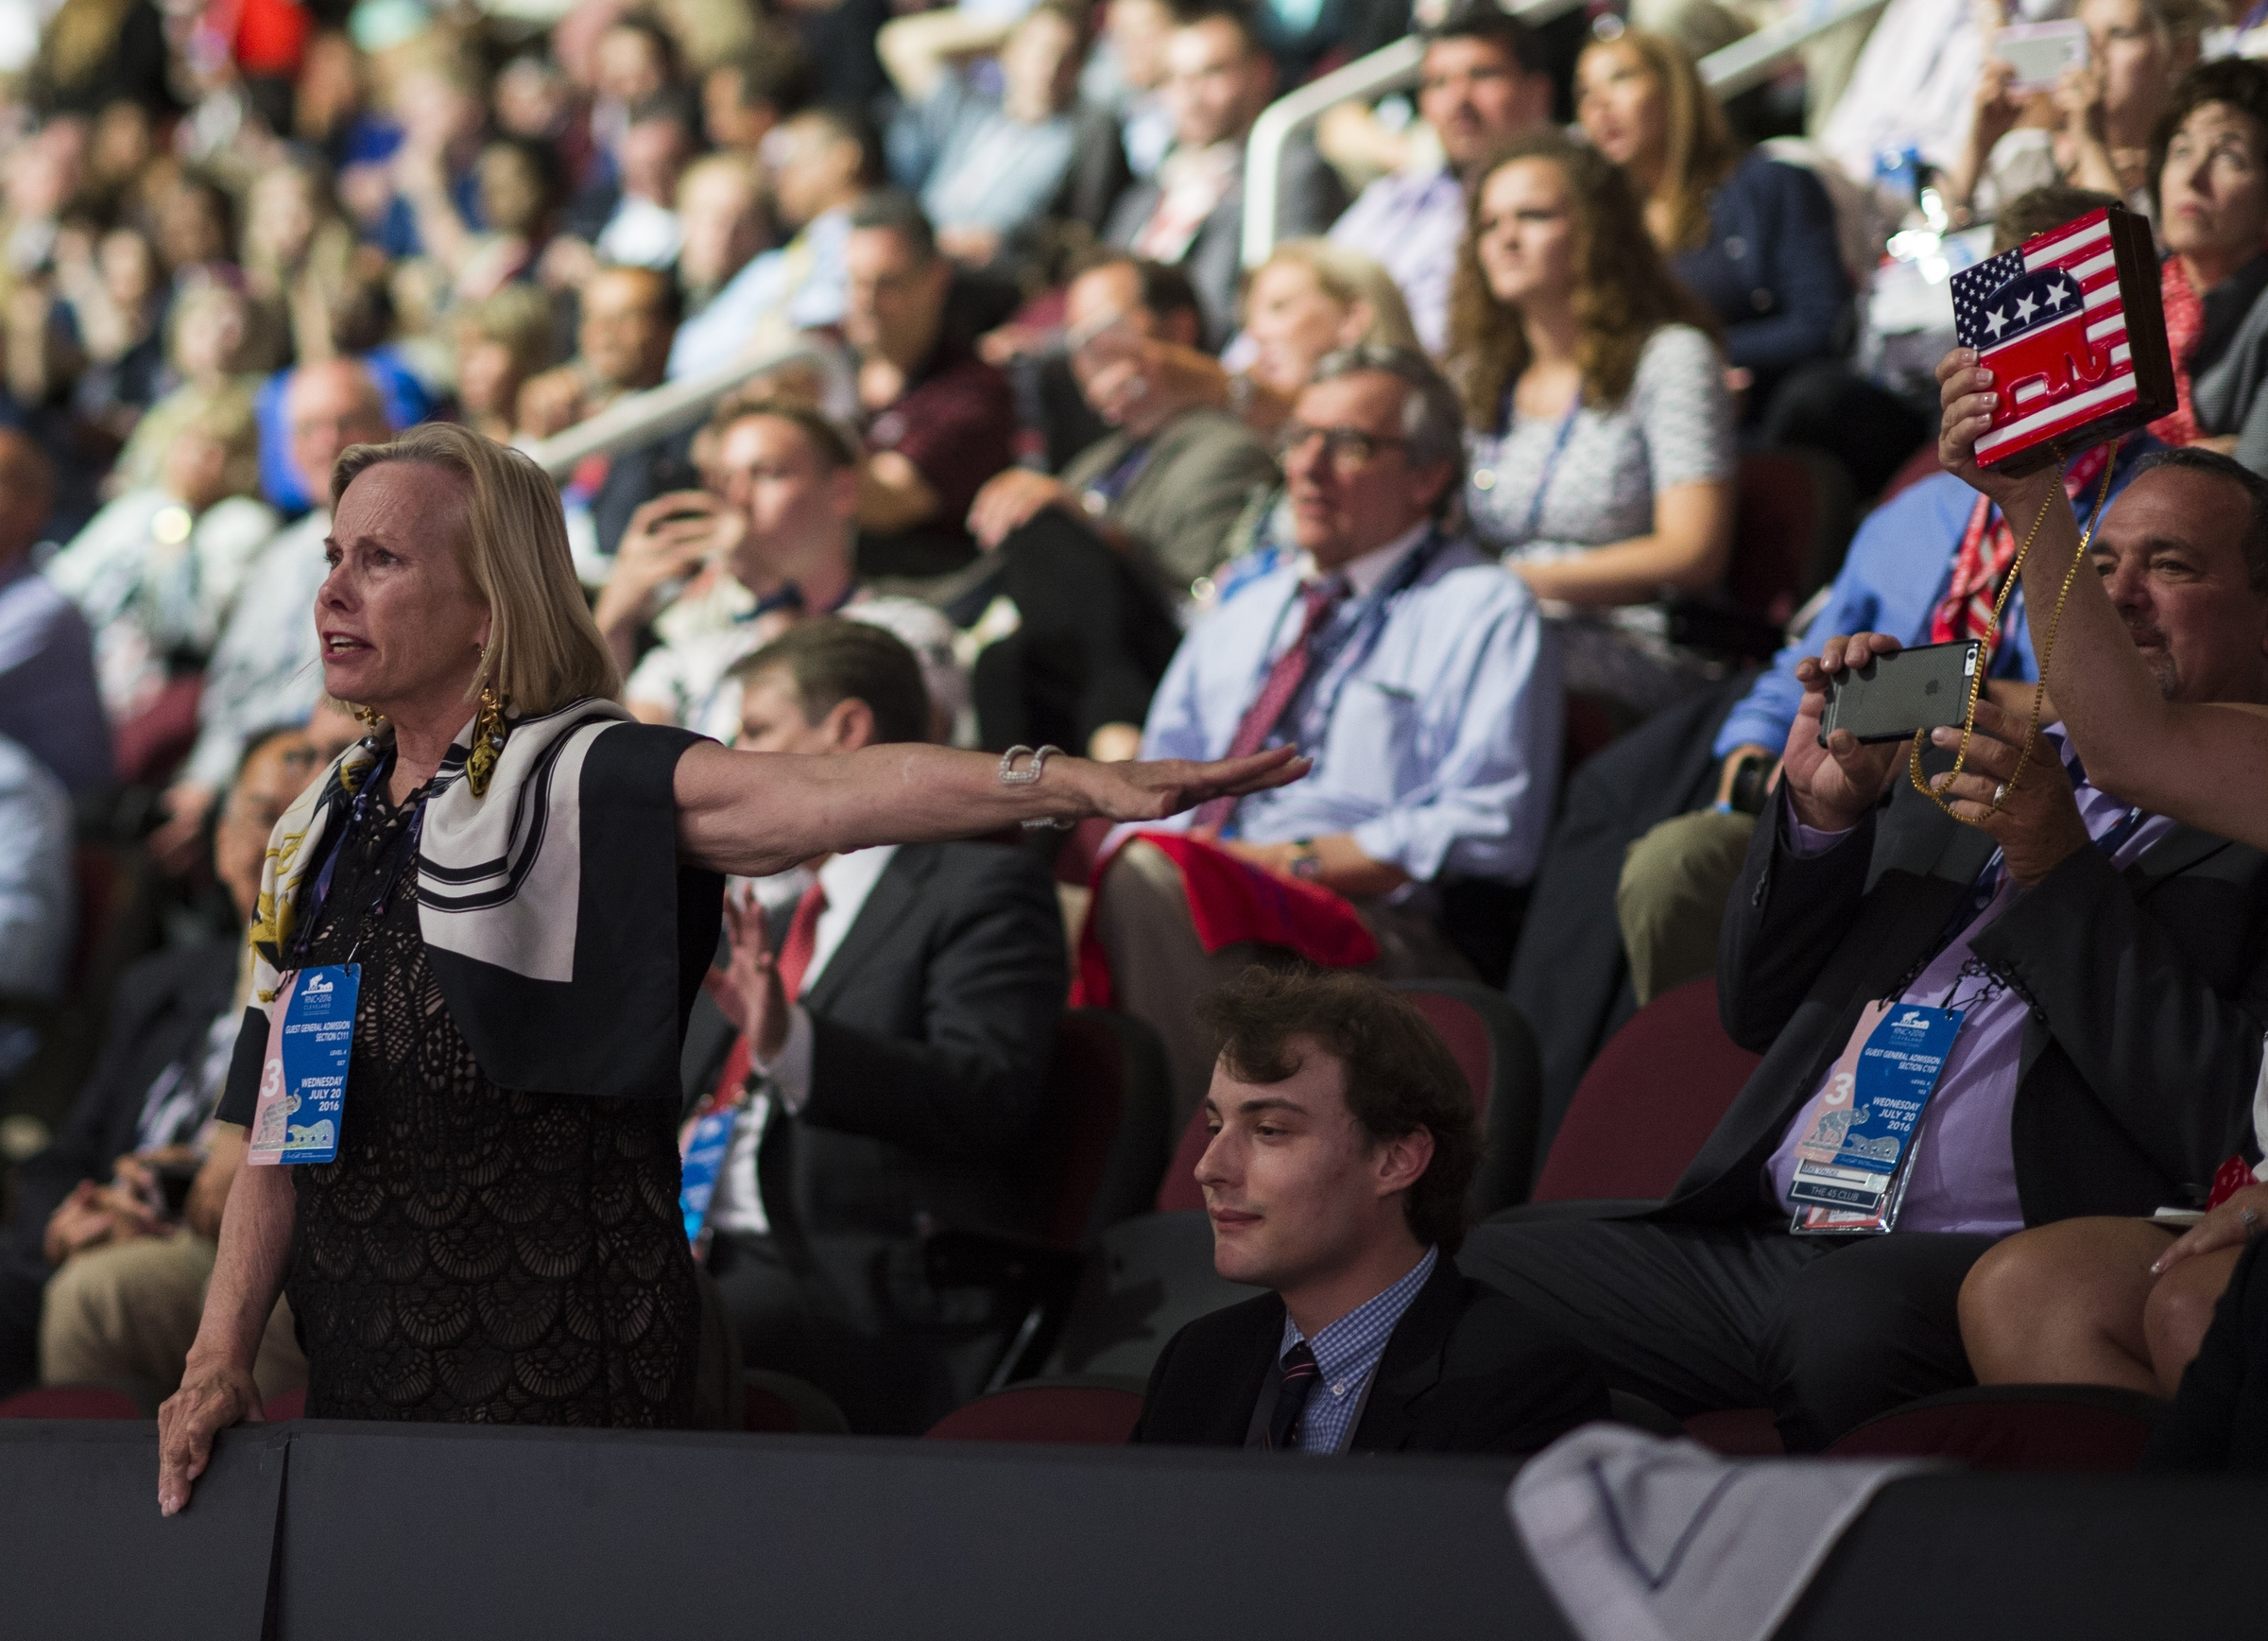 UNITED STATES - JULY 20: A woman in the upper seating area yells